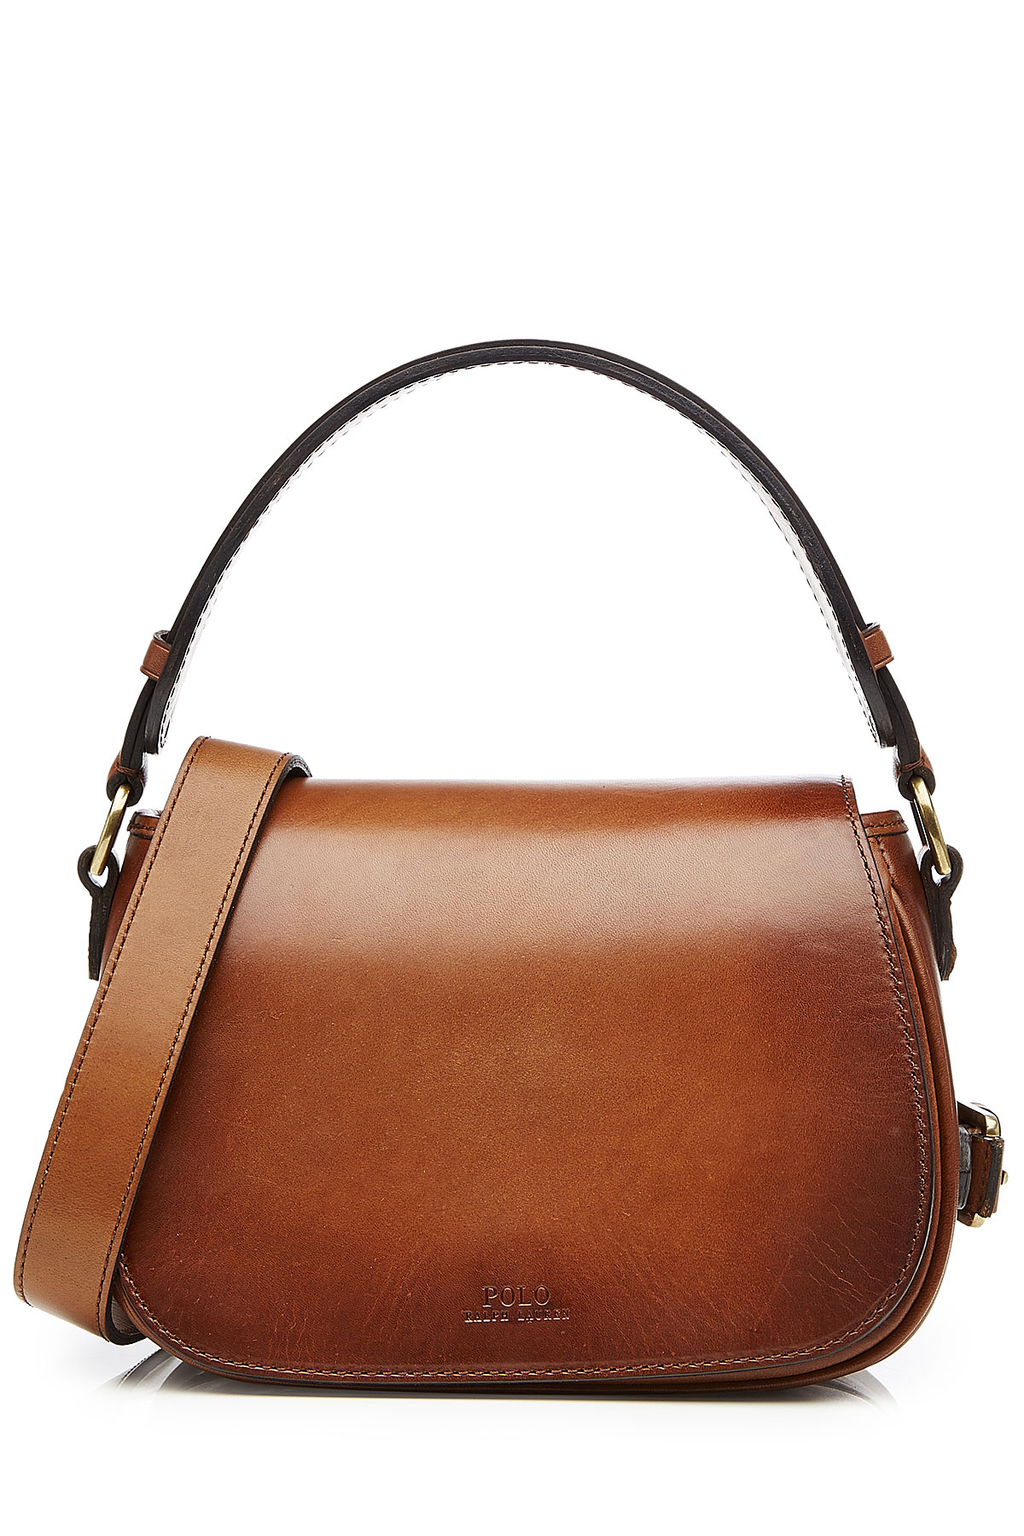 Leather Saddle Bag Brown - predominant colour: tan; occasions: casual; type of pattern: standard; style: shoulder; length: shoulder (tucks under arm); size: standard; material: leather; pattern: plain; finish: plain; season: a/w 2016; wardrobe: highlight